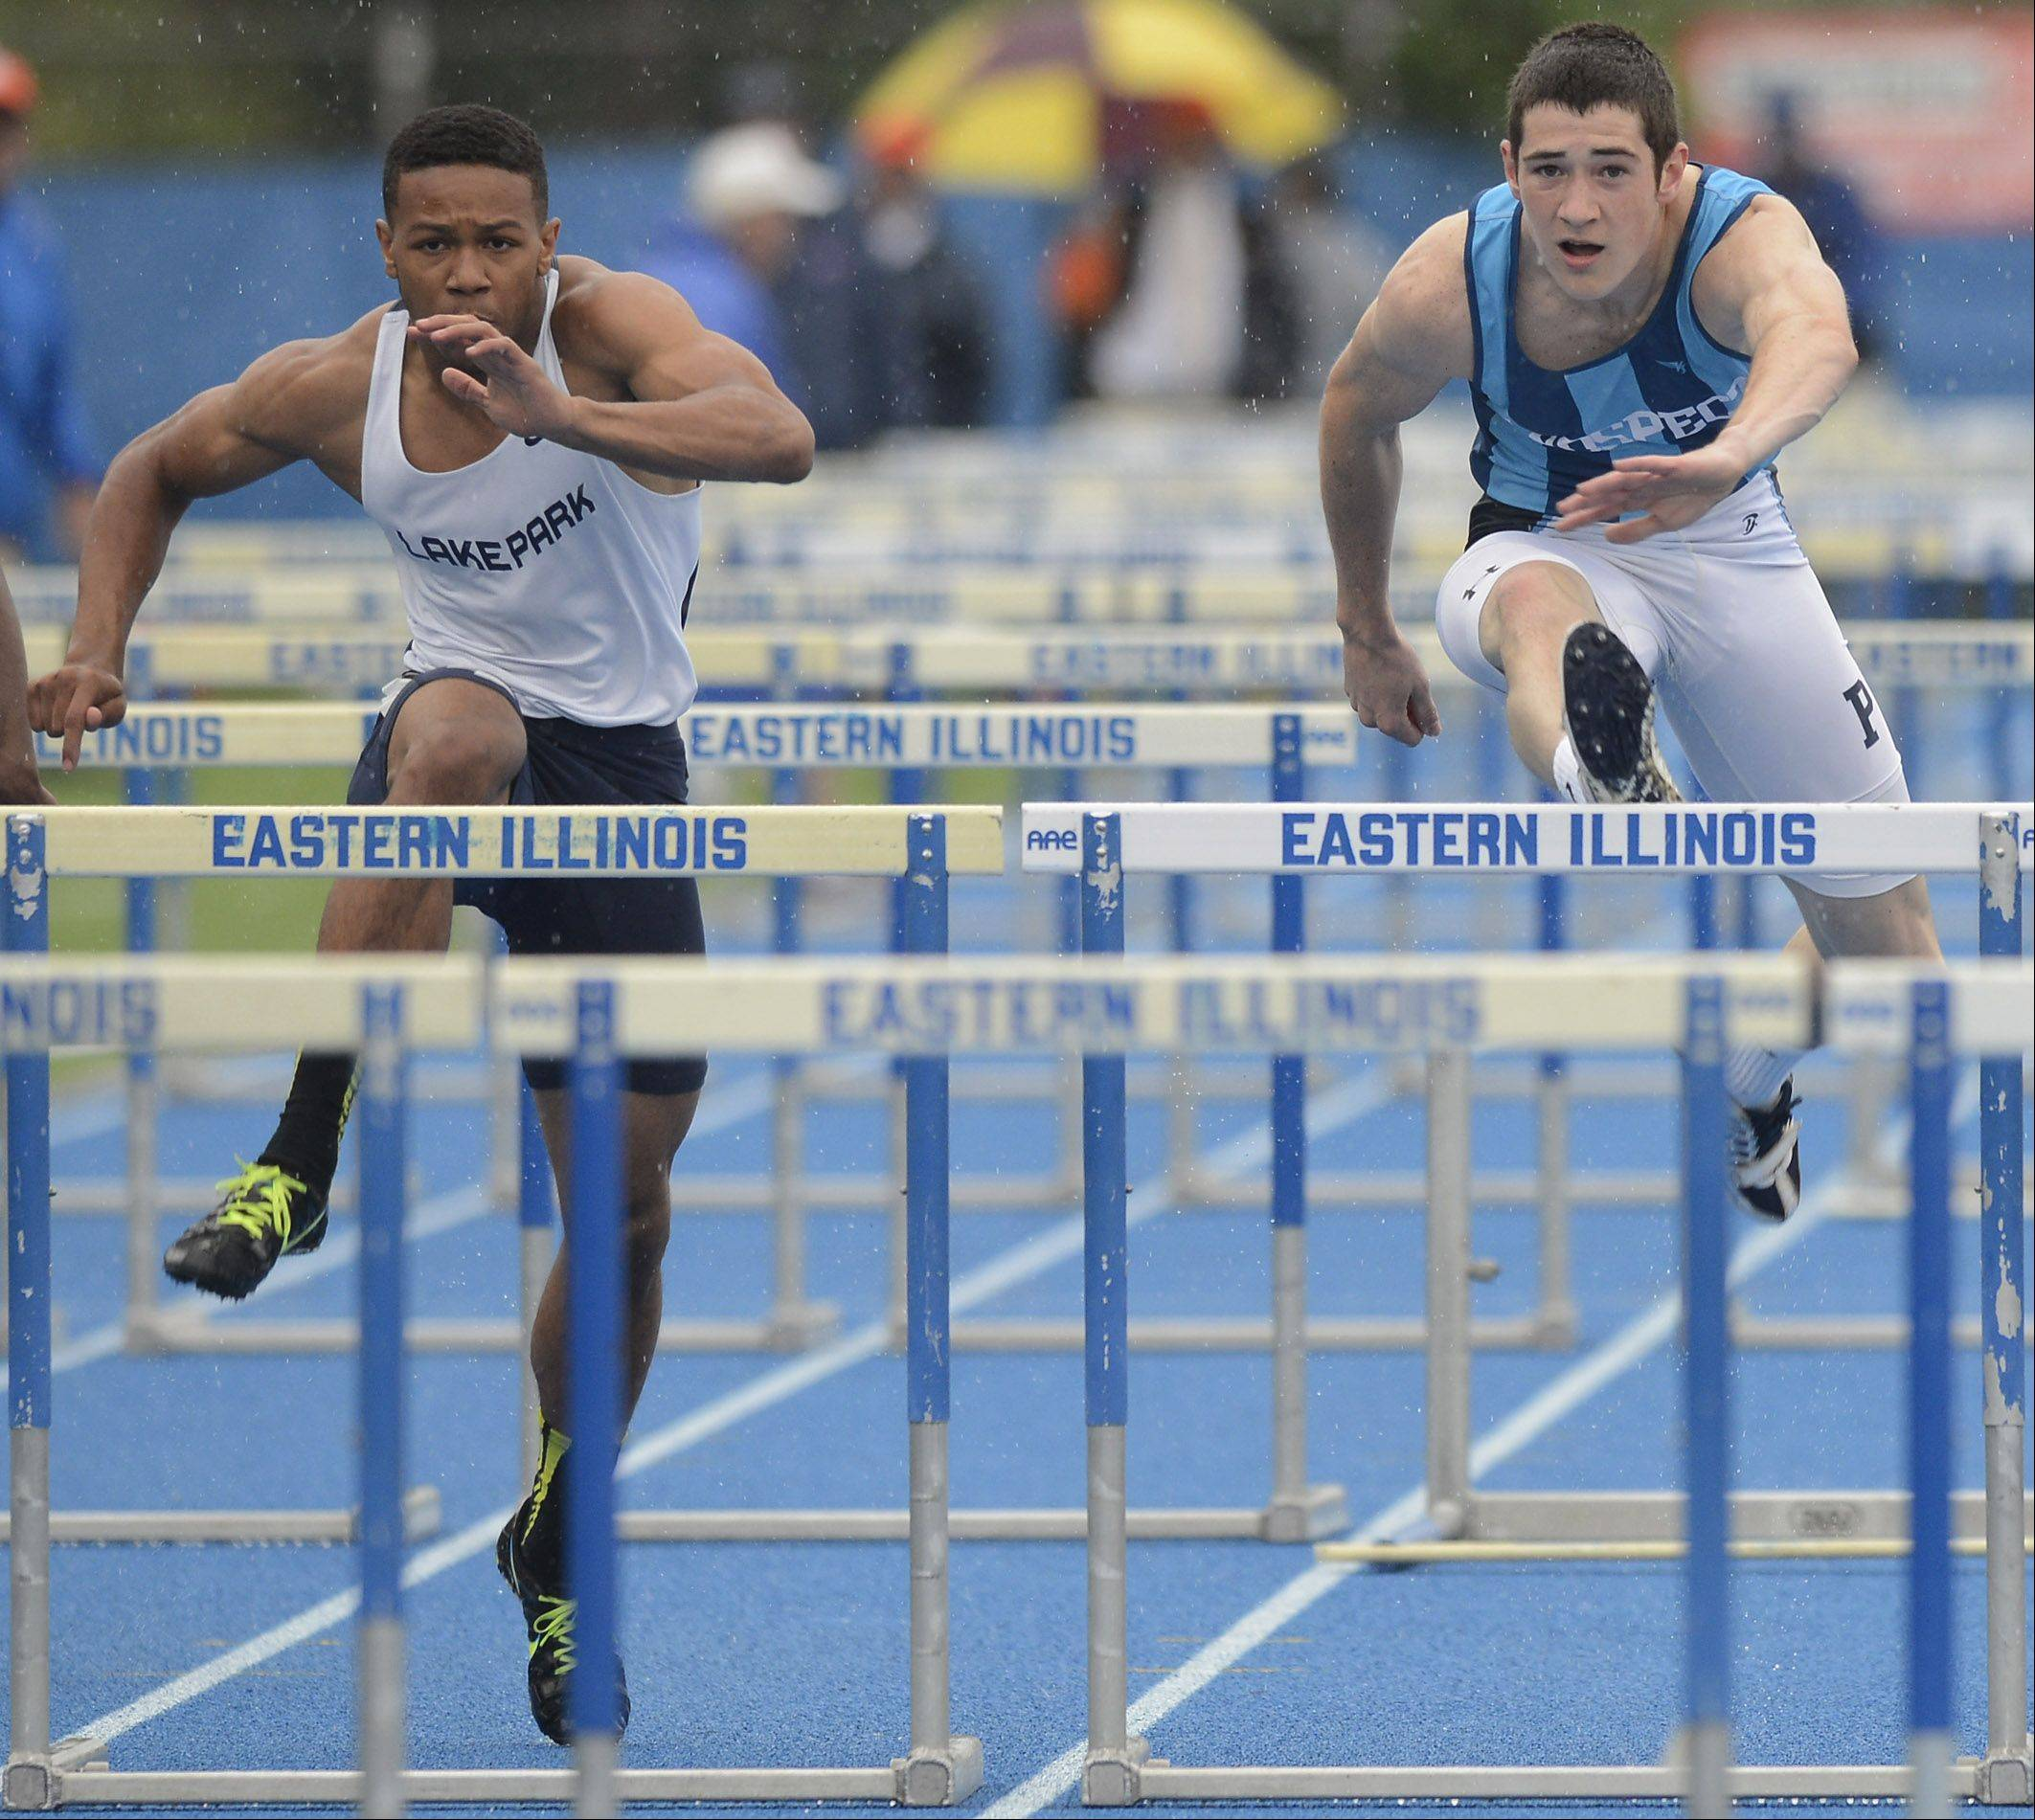 Lake Park's Antonio Shenault, left, and Prospect's Dave Kendziera compete in the Class 3A 110-meter high hurdles during the boys track state finals in Charleston on Saturday.